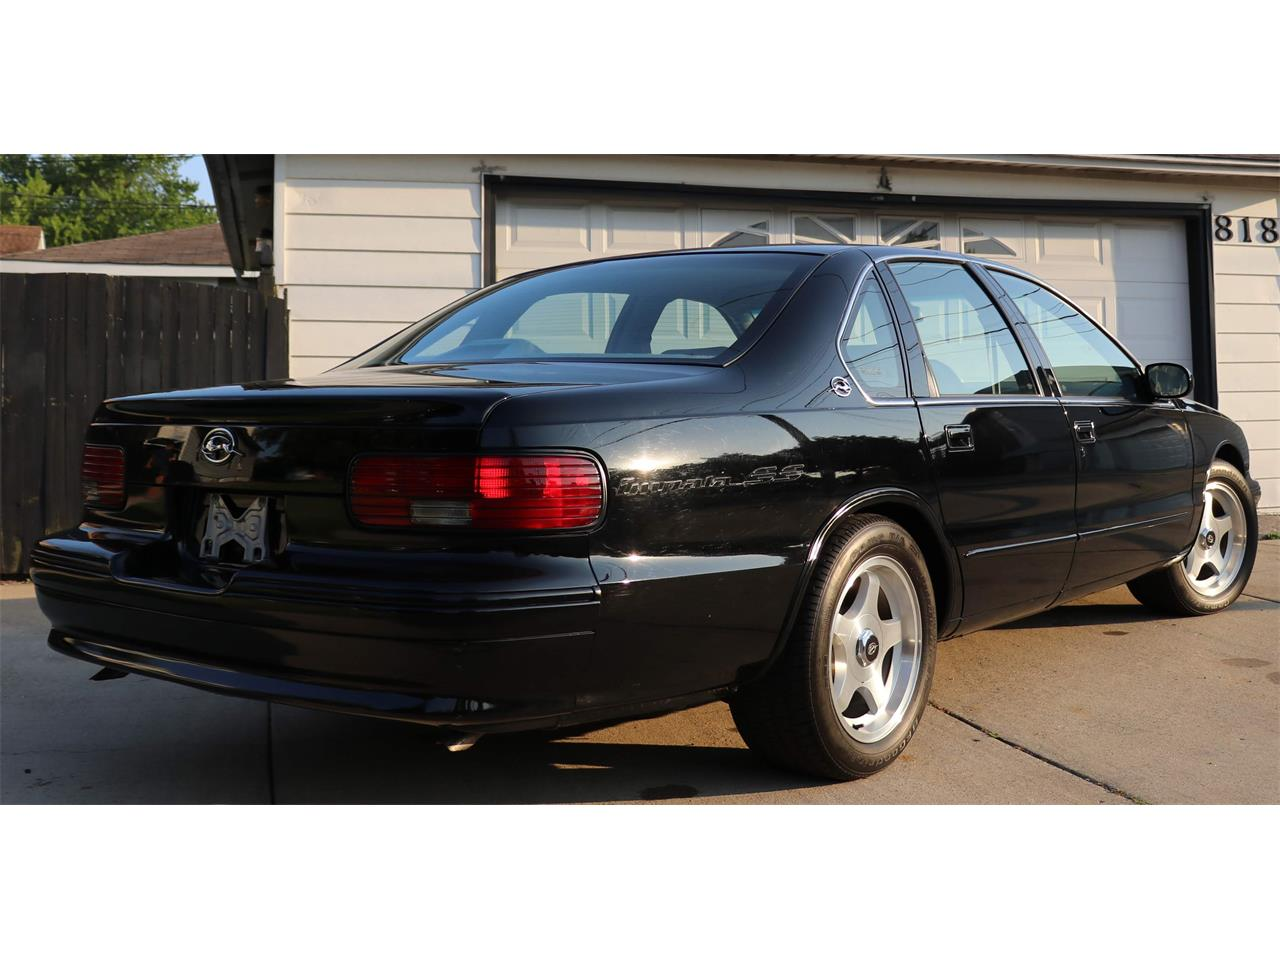 1996 Chevrolet Impala SS (CC-1333366) for sale in Melrose Park, Illinois